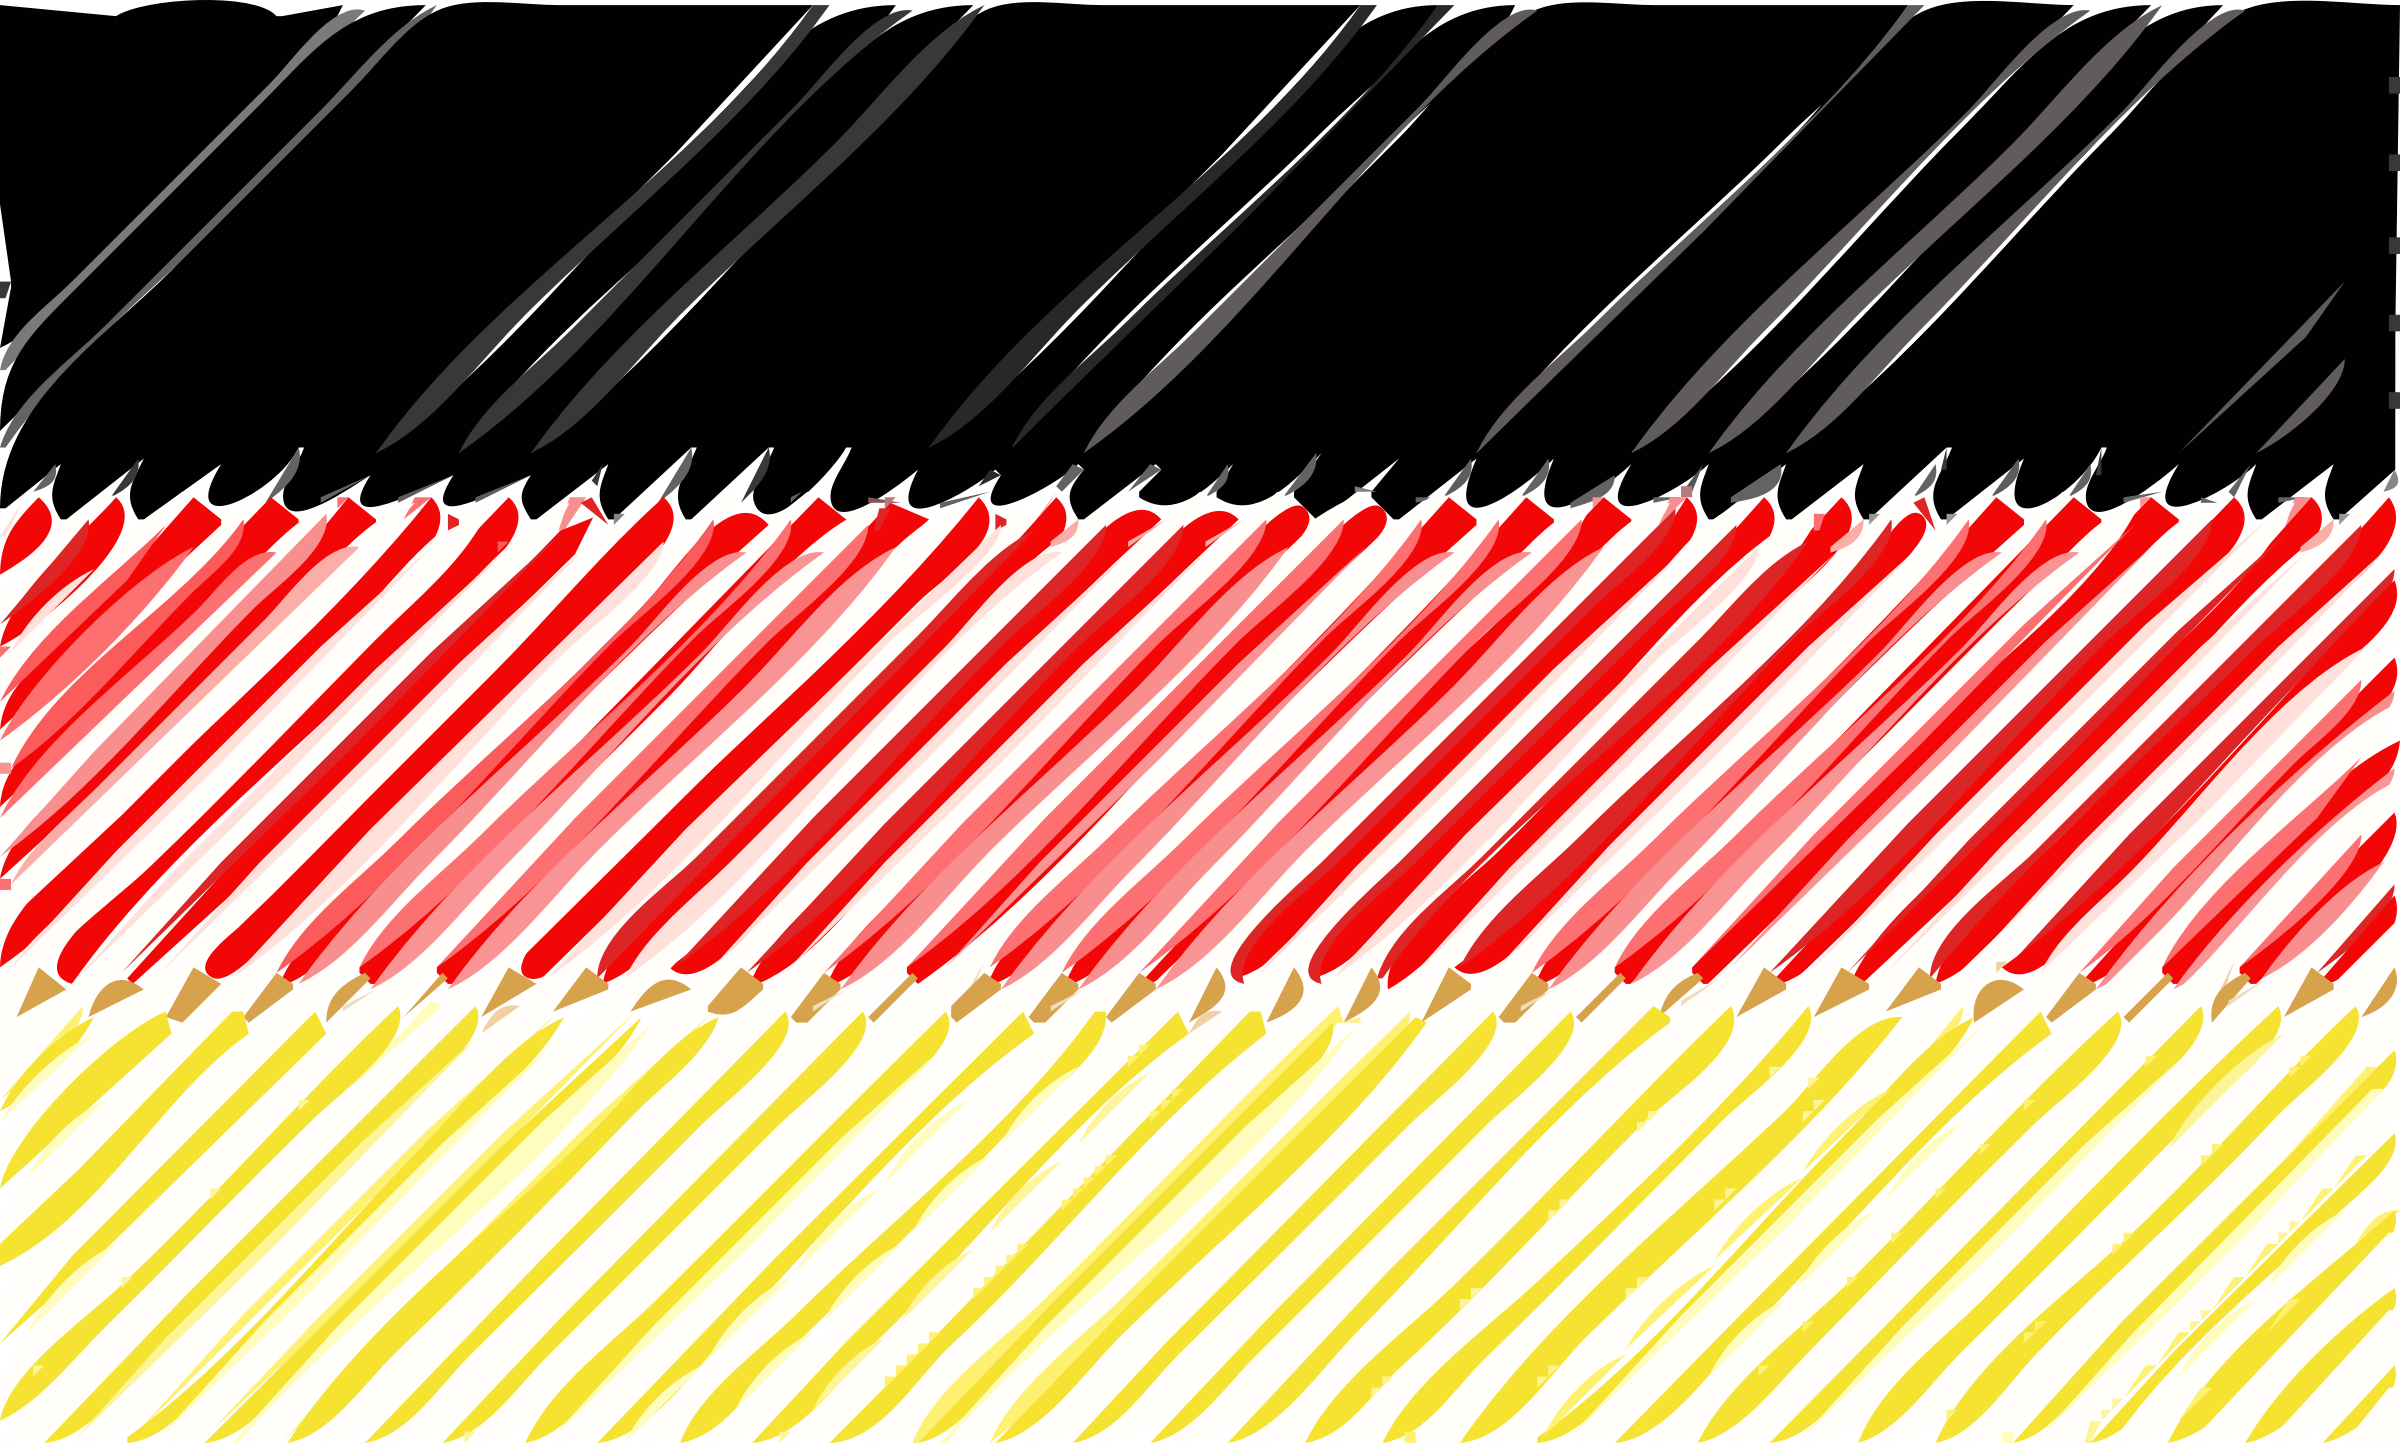 German flag linear by Joesph